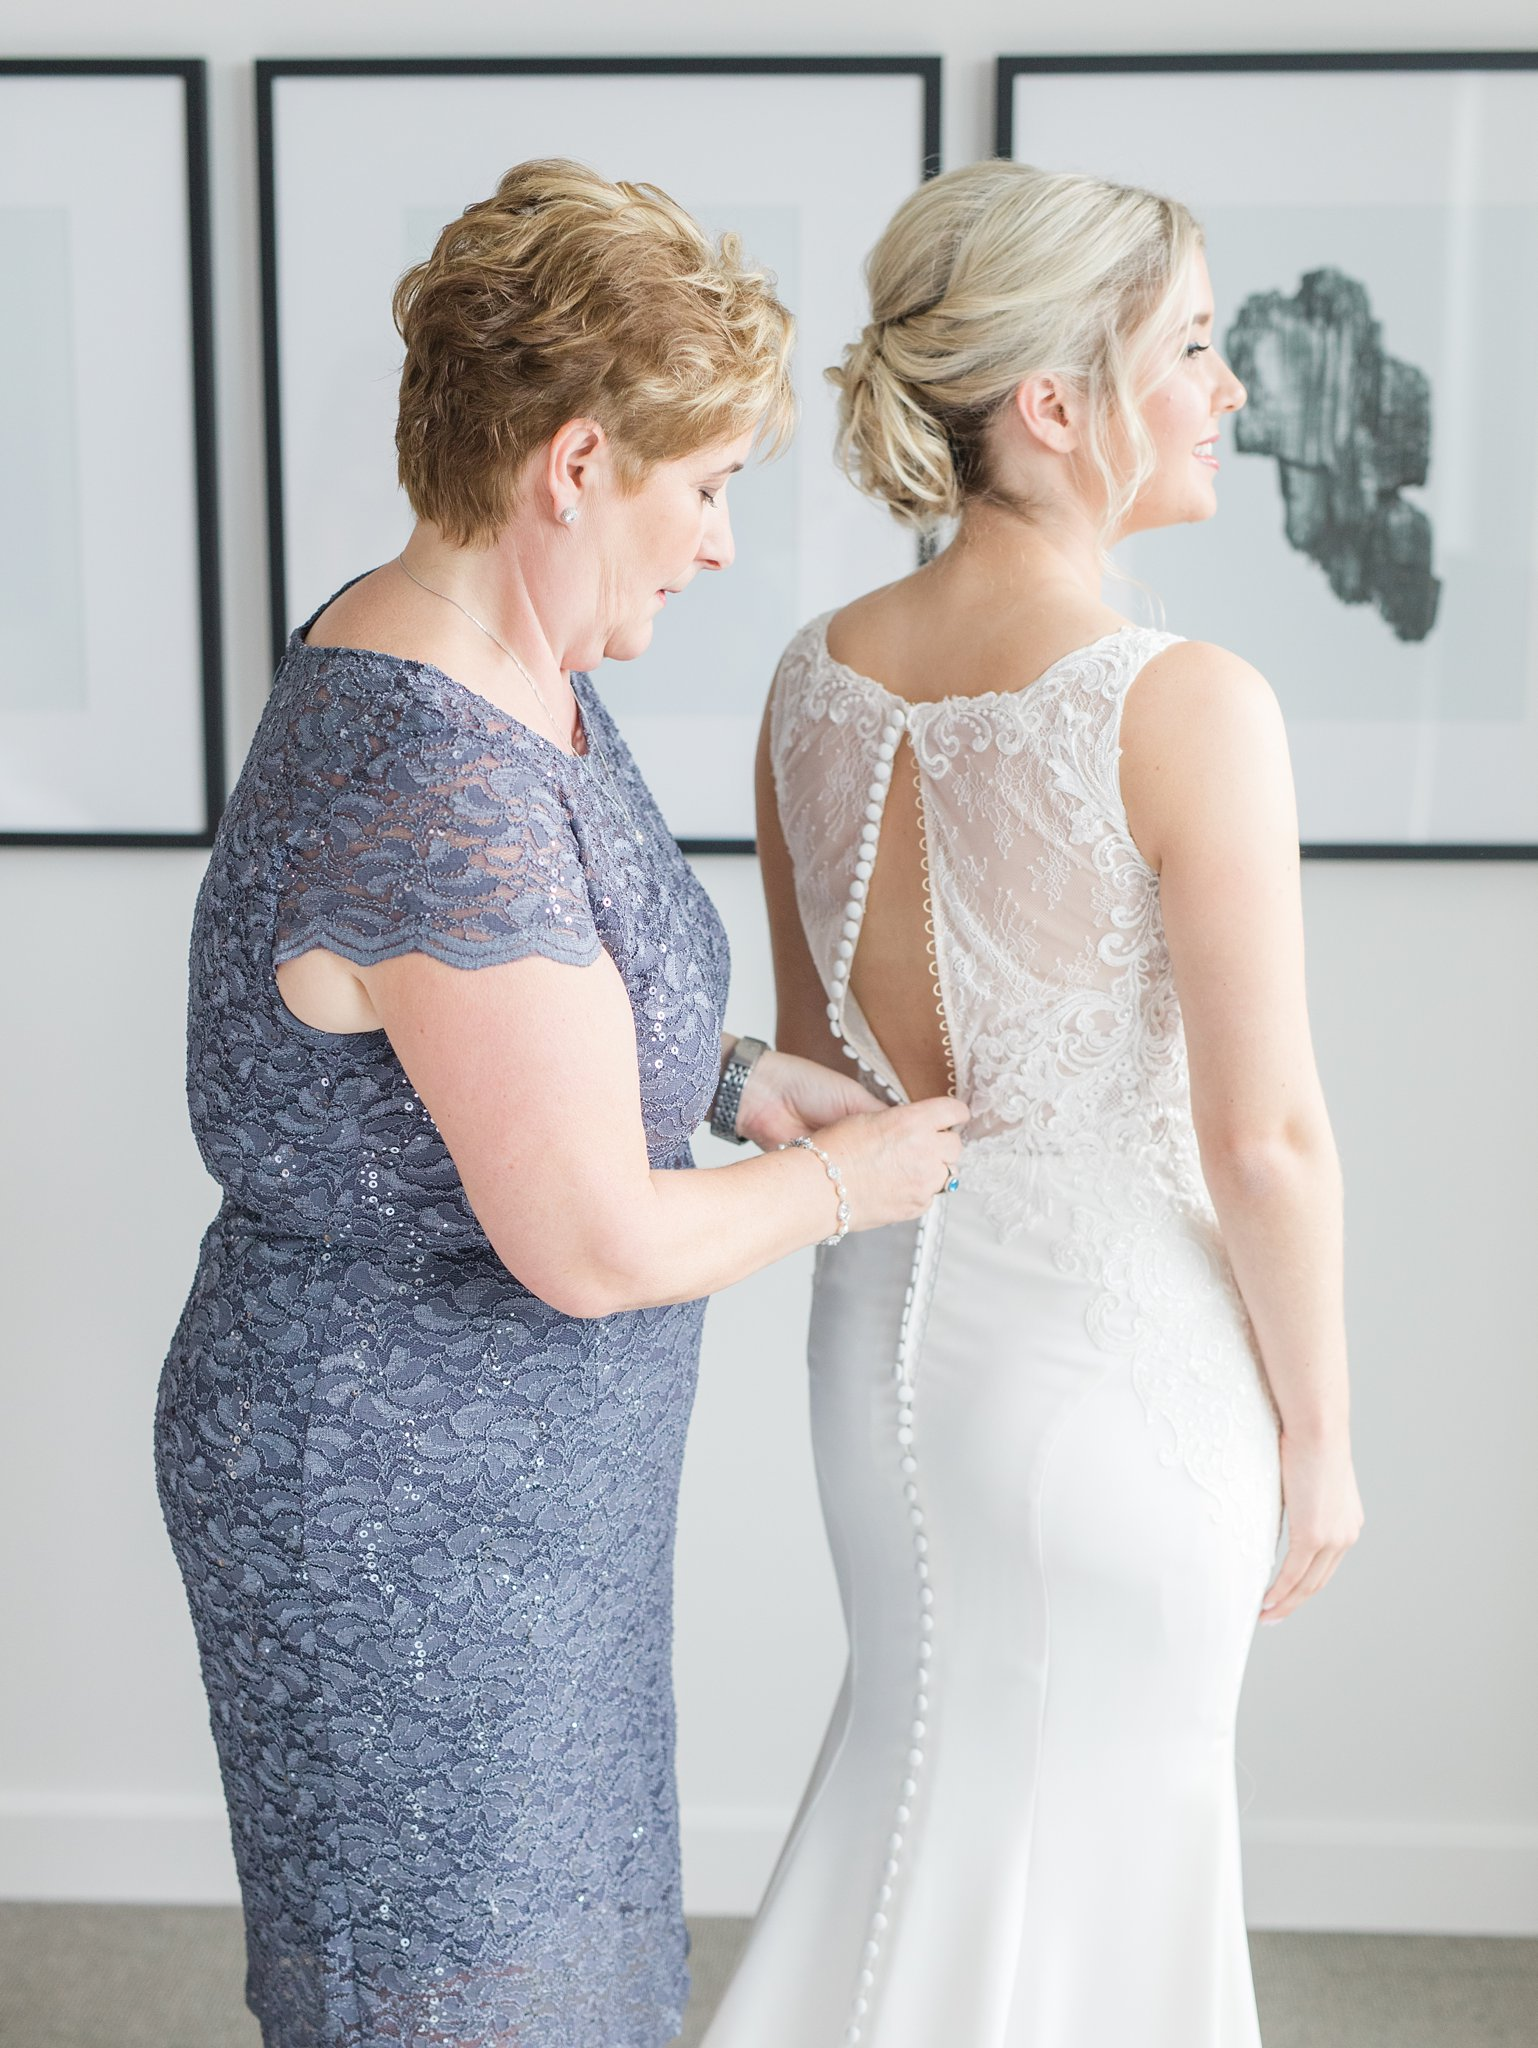 Lace back dress with white satin buttons Ottawa restaurant wedding at Sidedoor Restaurant